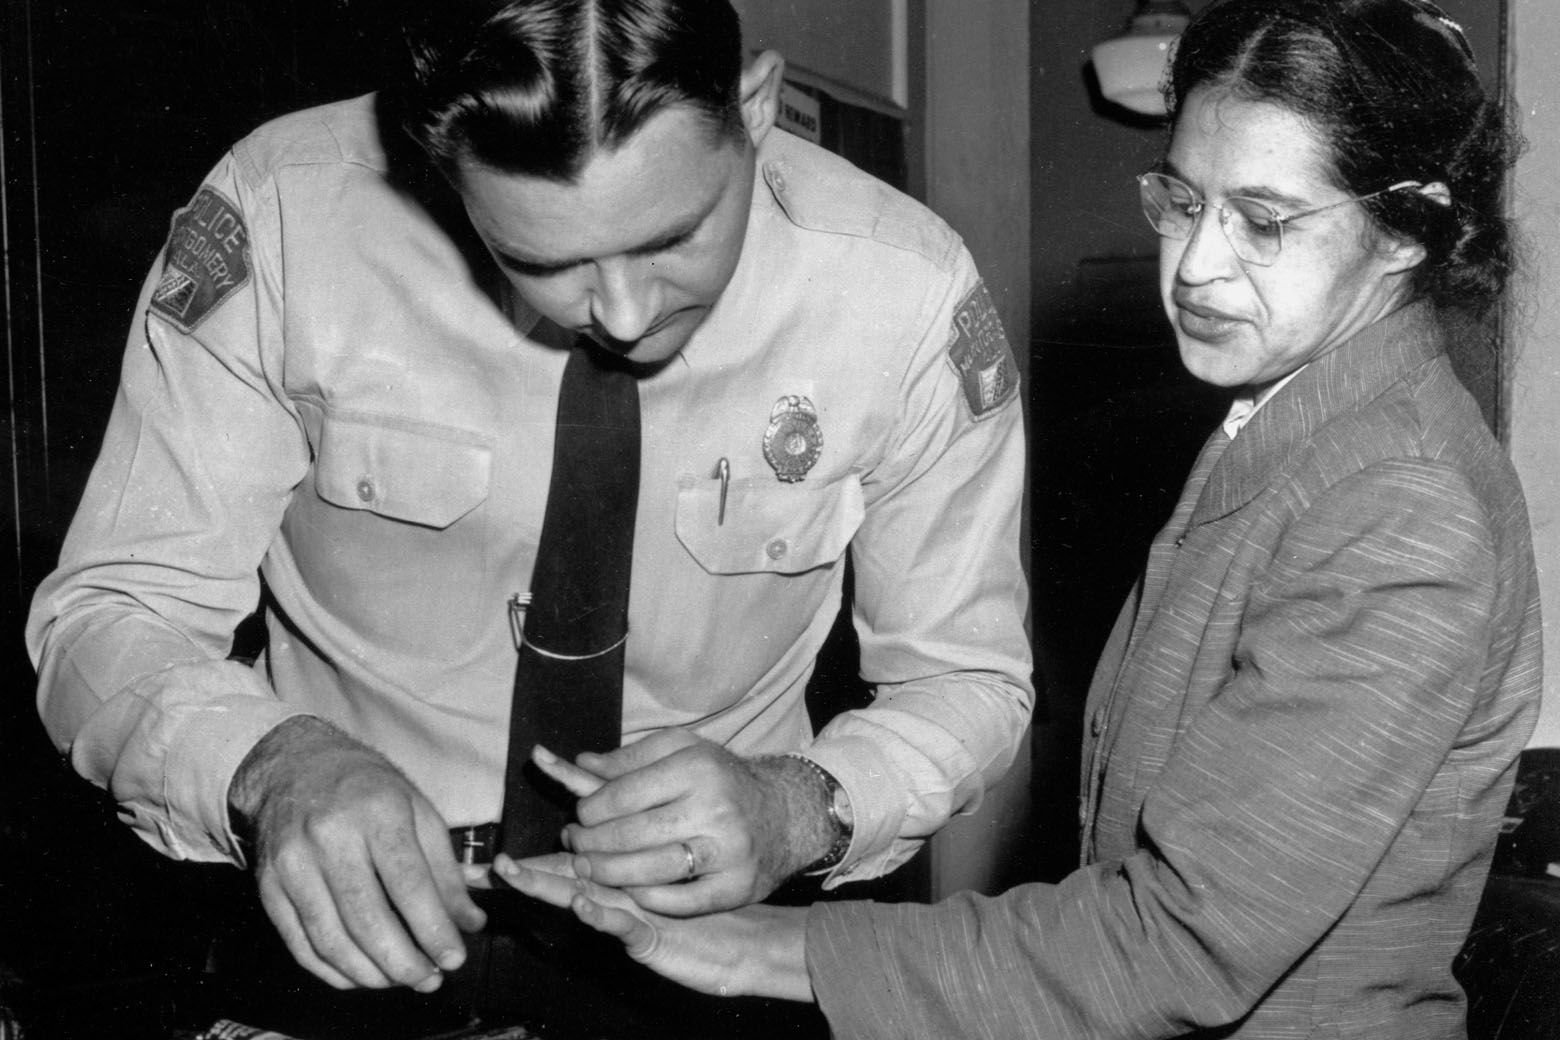 FILE - In this Feb. 22, 1956, file photo, Rosa Parks is fingerprinted by police Lt. D.H. Lackey in Montgomery, Ala., two months after refusing to give up her seat on a bus for a white passenger on Dec. 1, 1955. She was arrested with several others who violated segregation laws. Parks' refusal to give up her seat led to a boycott of buses by blacks in December 1955, a tactic organized by the Rev. Dr. Martin Luther King Jr., which ended after the U.S. Supreme Court deemed that all segregation was unlawful on Dec. 20, 1956. (AP Photo/Gene Herrick, File)